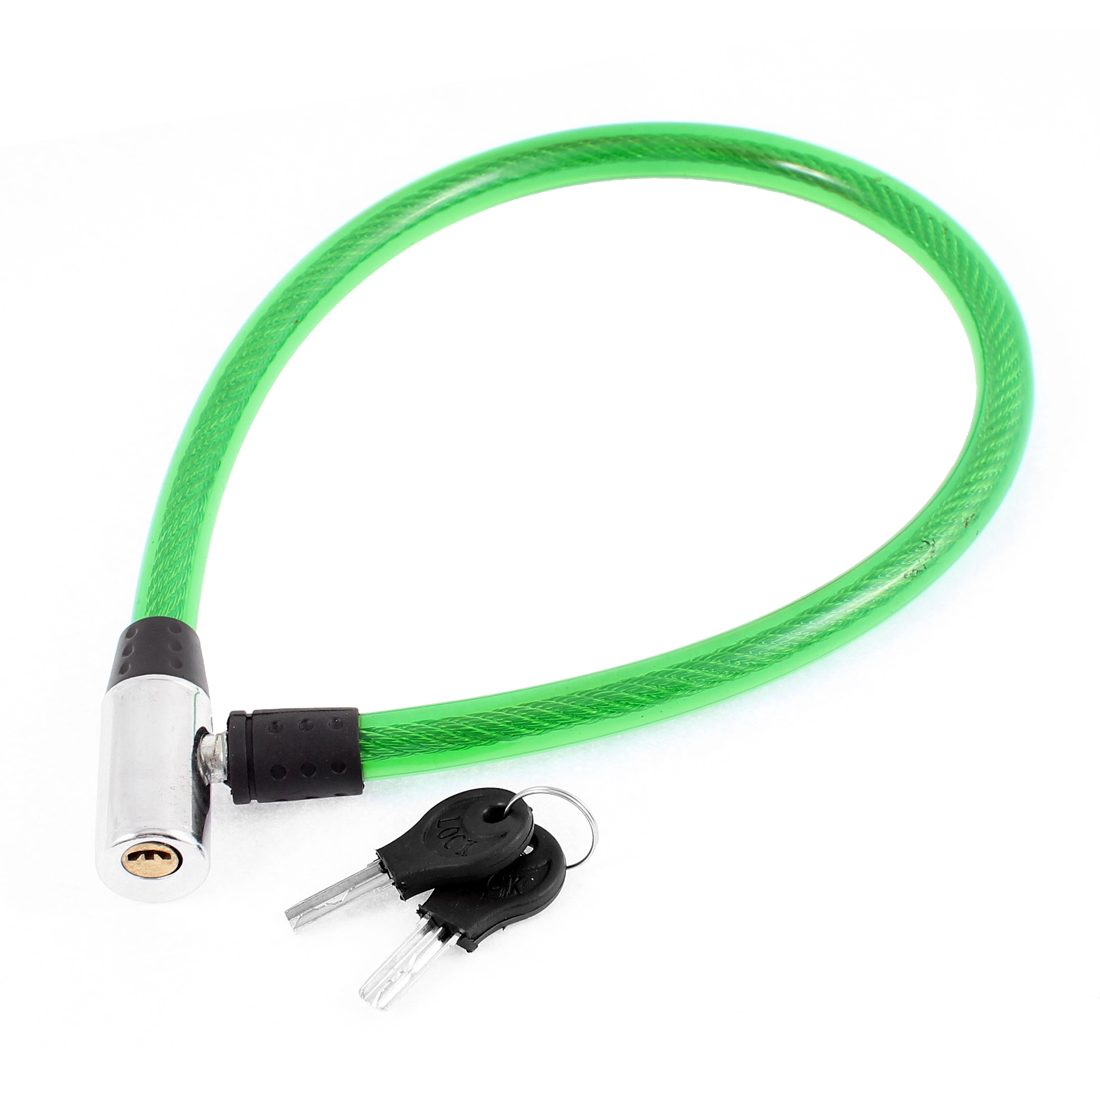 Bike Bicycle Motorcycle Plastic Coated Flexible Security Cable Lock Green